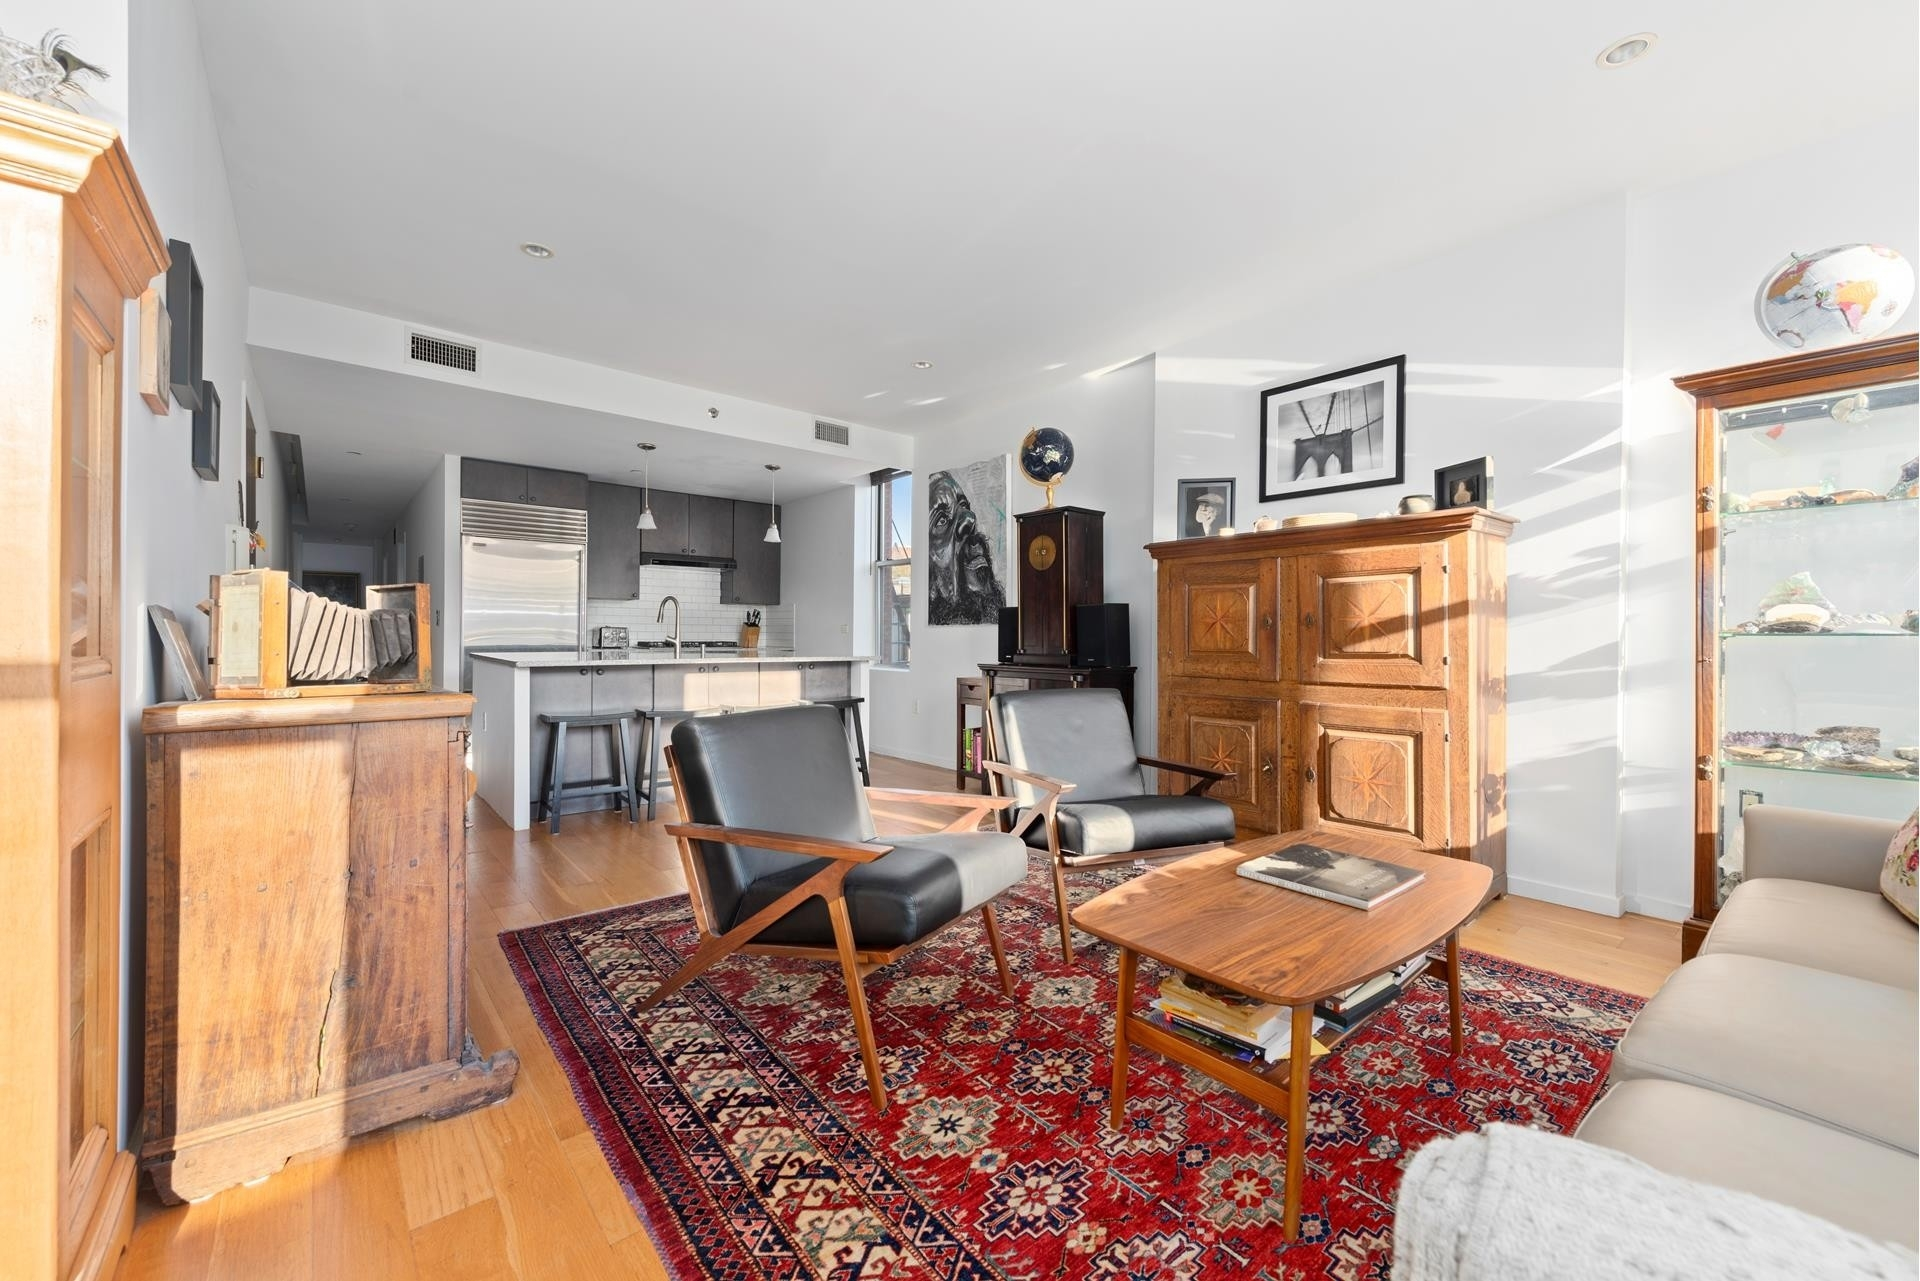 3. Condominiums for Sale at One Striver's Row, 2605 Frederick Douglass Boulevard, 4B Central Harlem, New York, NY 10030